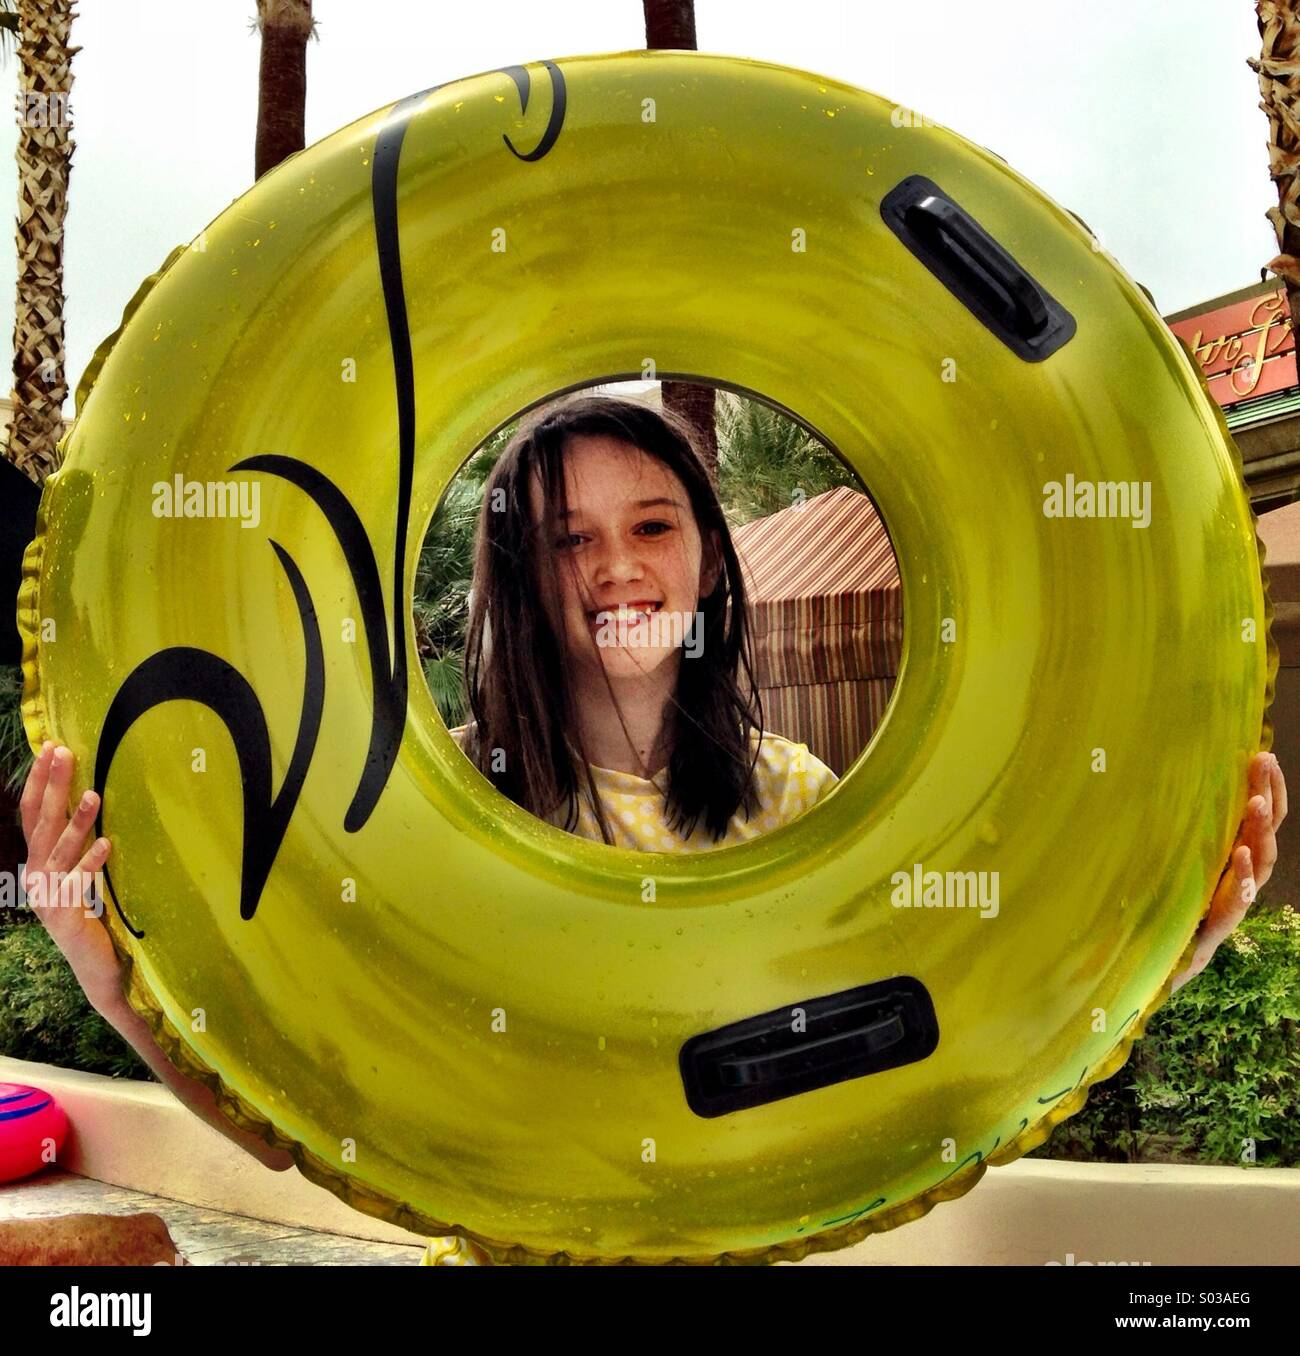 A young girl holds a yellow inner tube. The tube frames her smiling face. - Stock Image